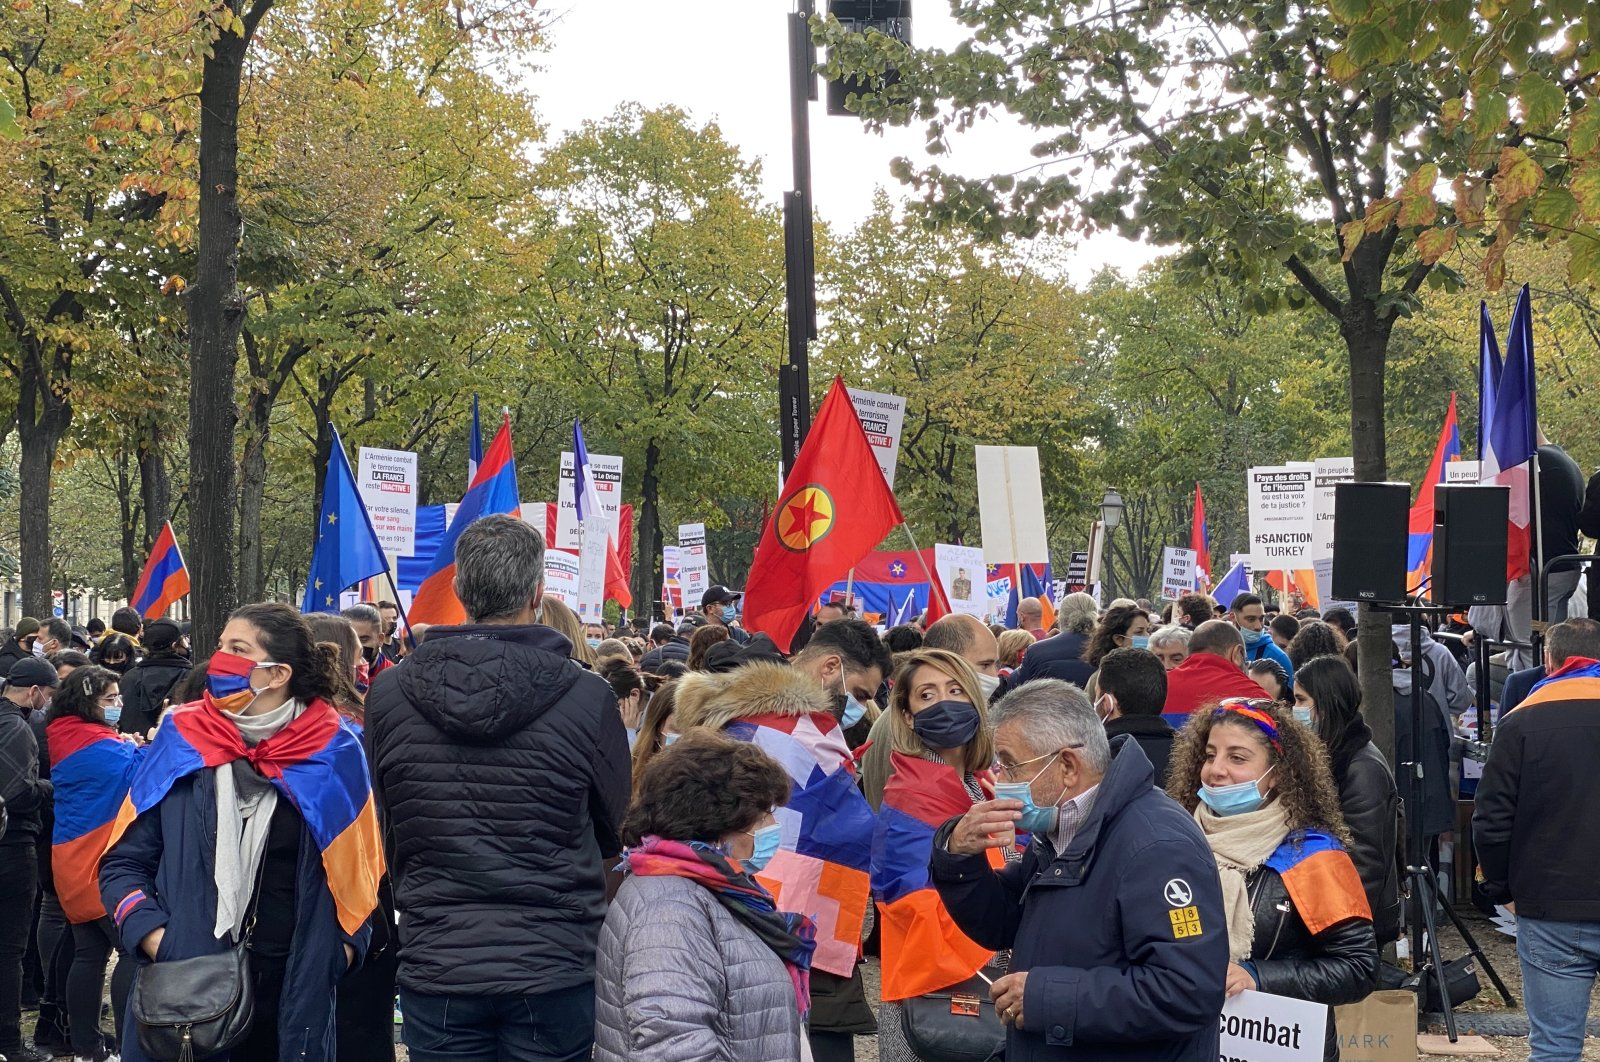 Armenians and PKK terrorists hold a demonstration against Azerbaijan and Turkey in the French capital Paris, Oct. 18, 2020. (AA Photo)